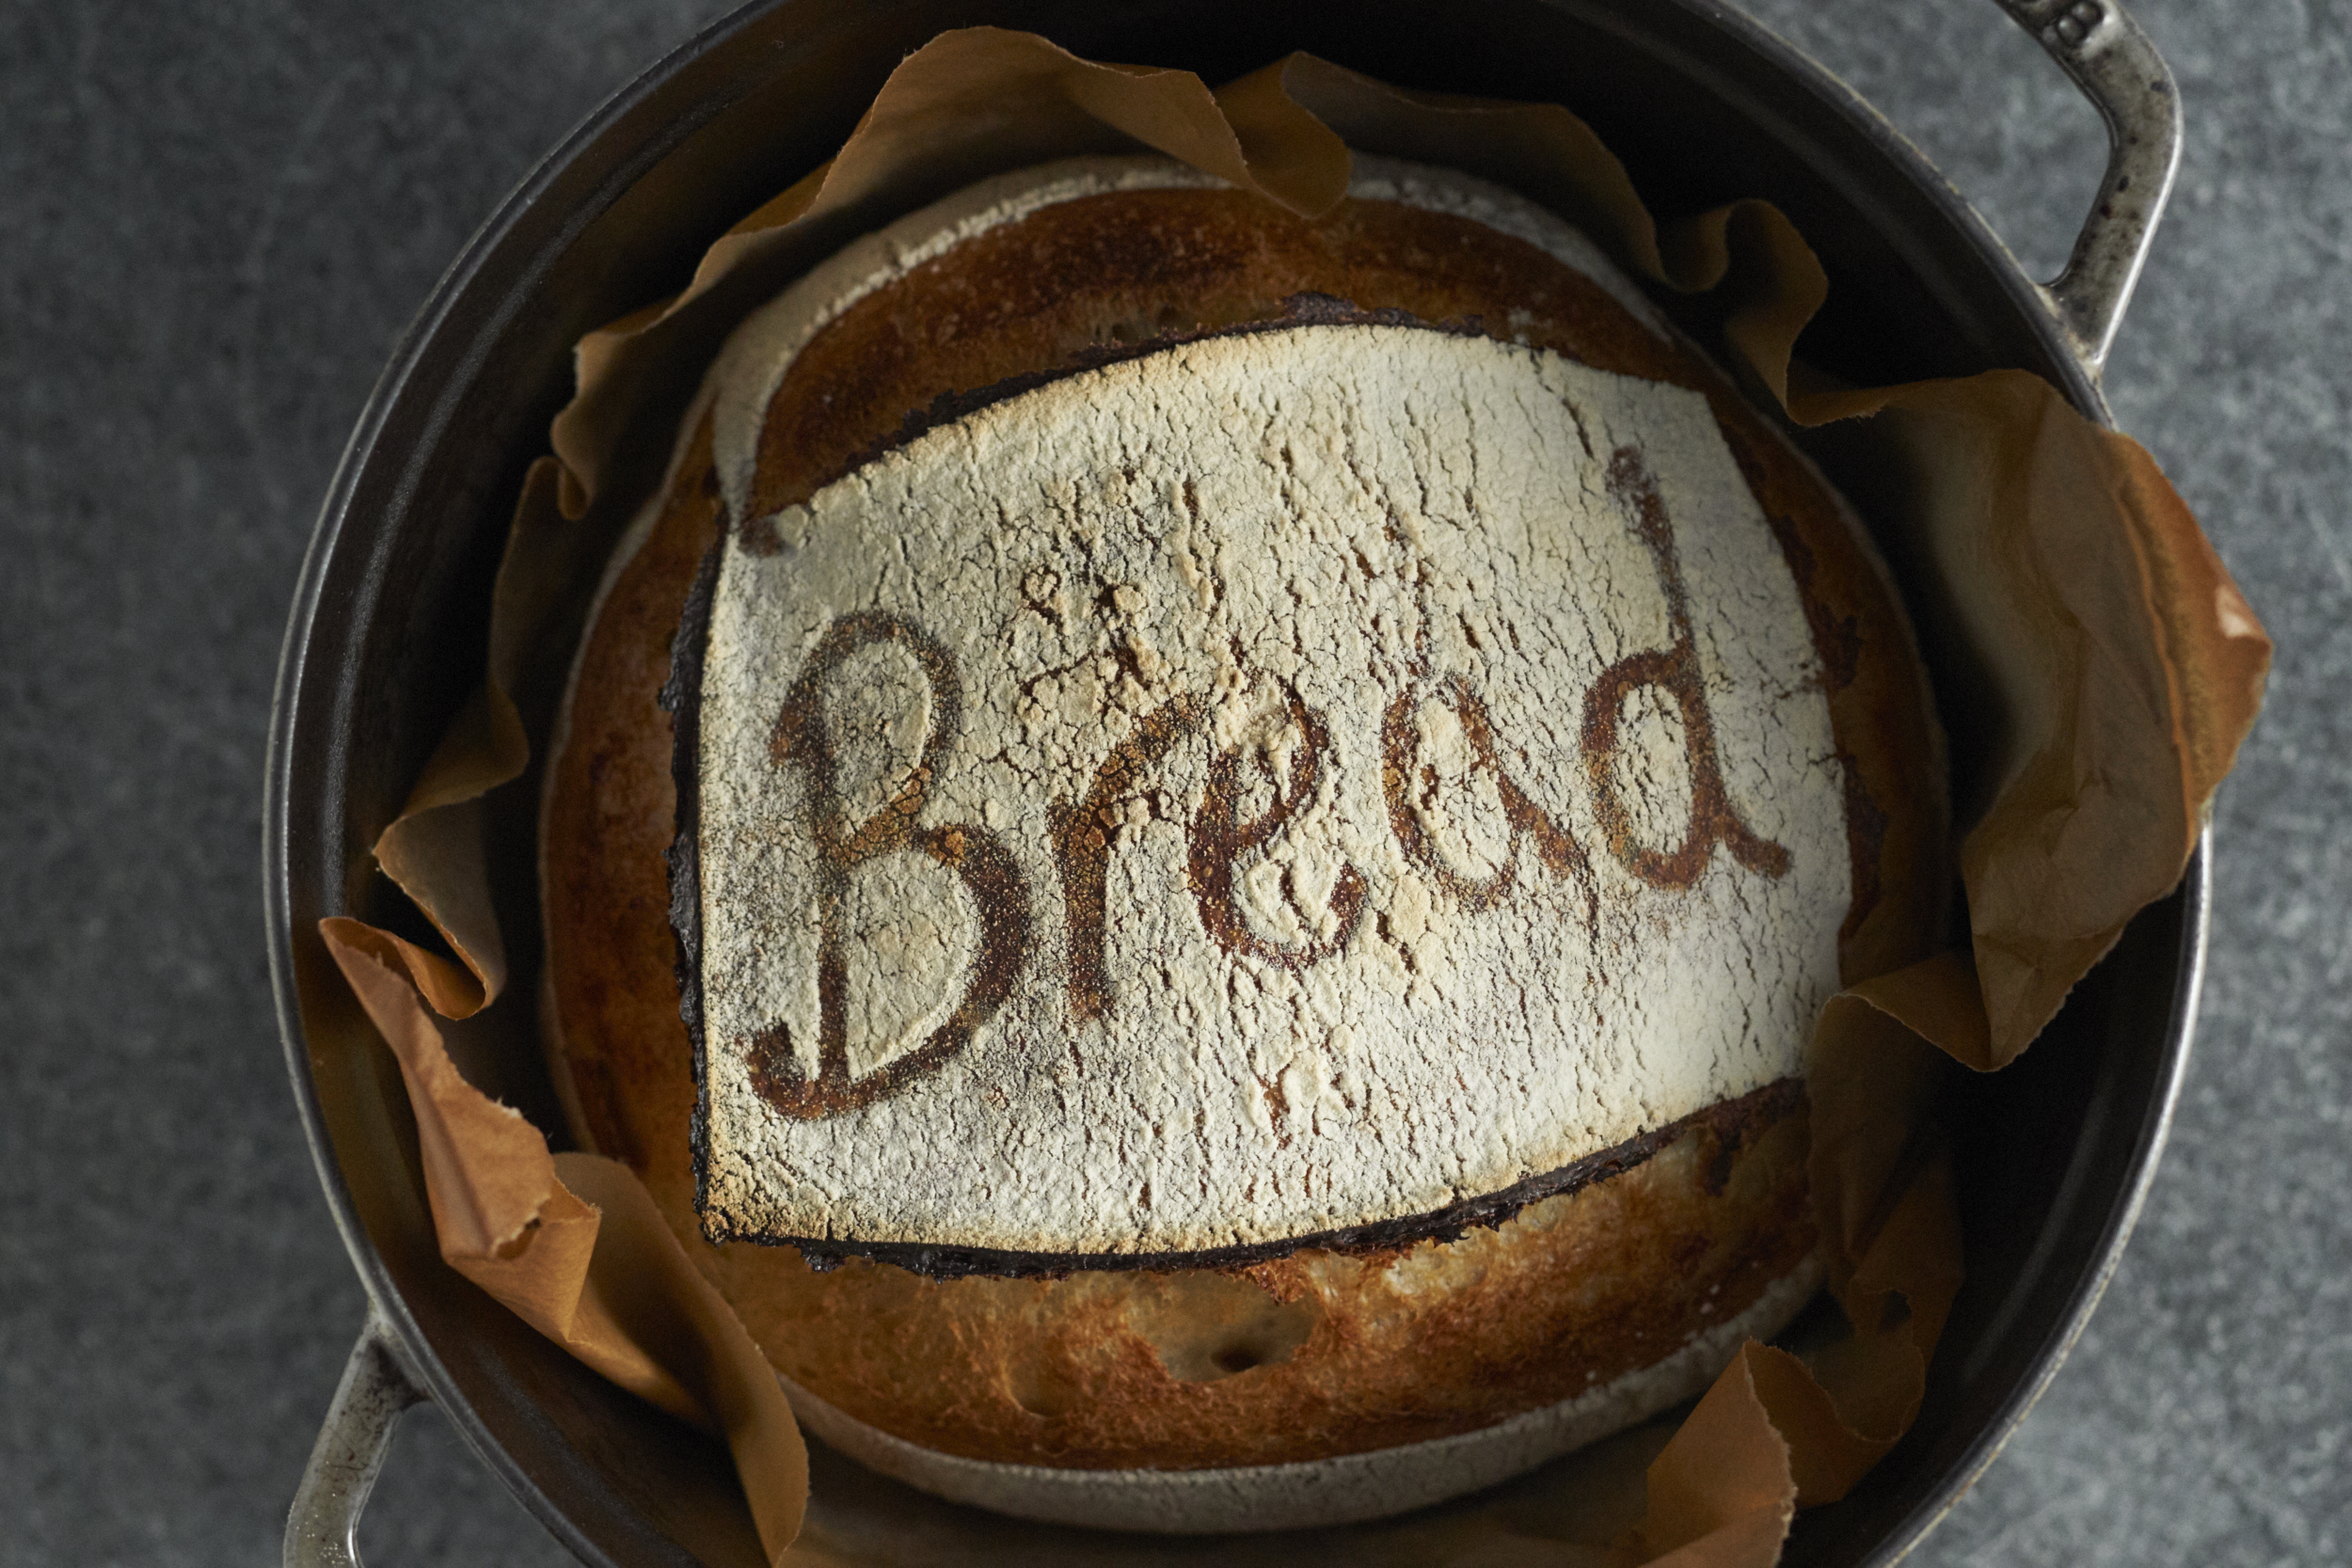 1.9.19_Test_Bread_0787.jpg